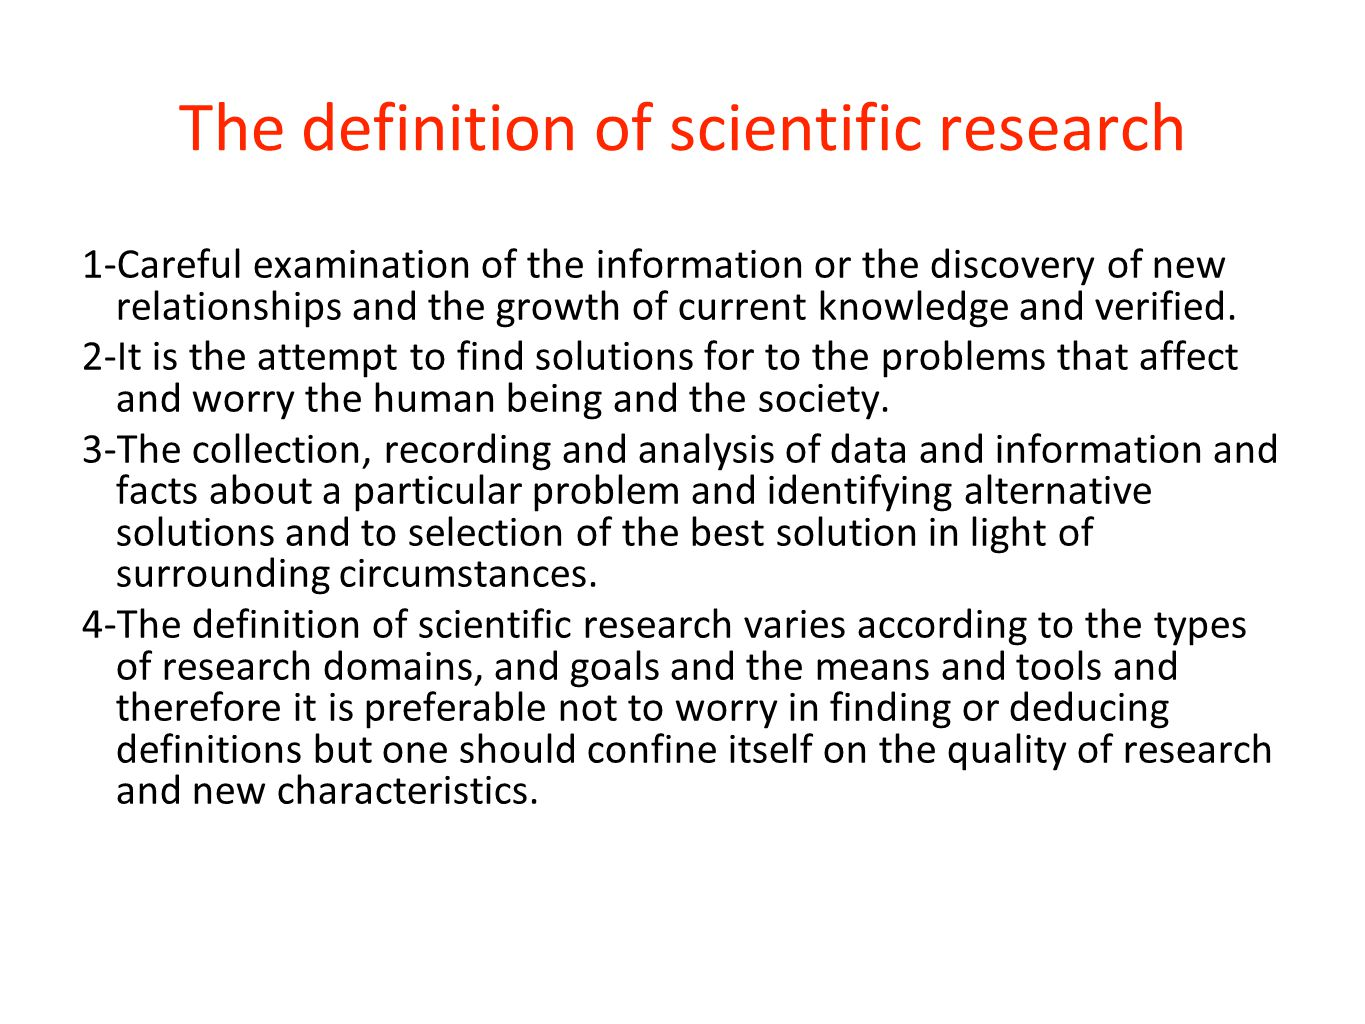 The definition of scientific research